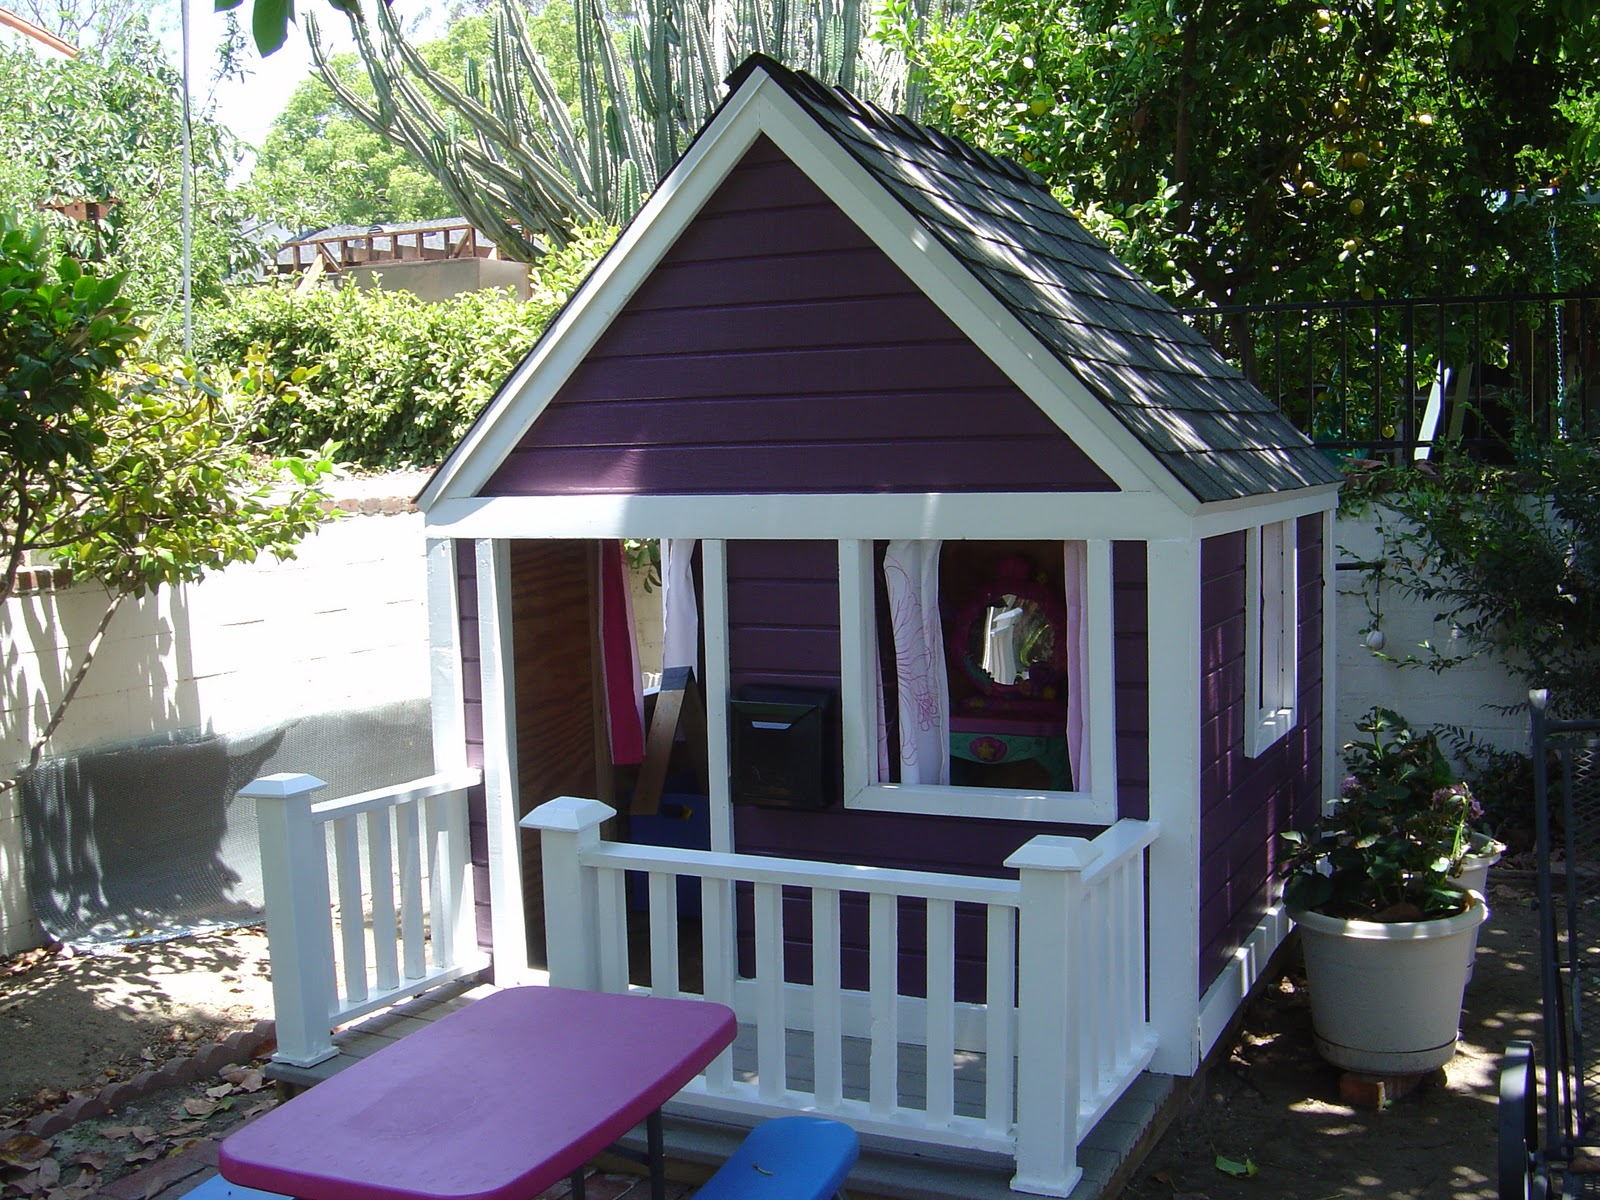 Diy girls and boys playhouse designs for backyard bahay ofw for Diy outside playhouse